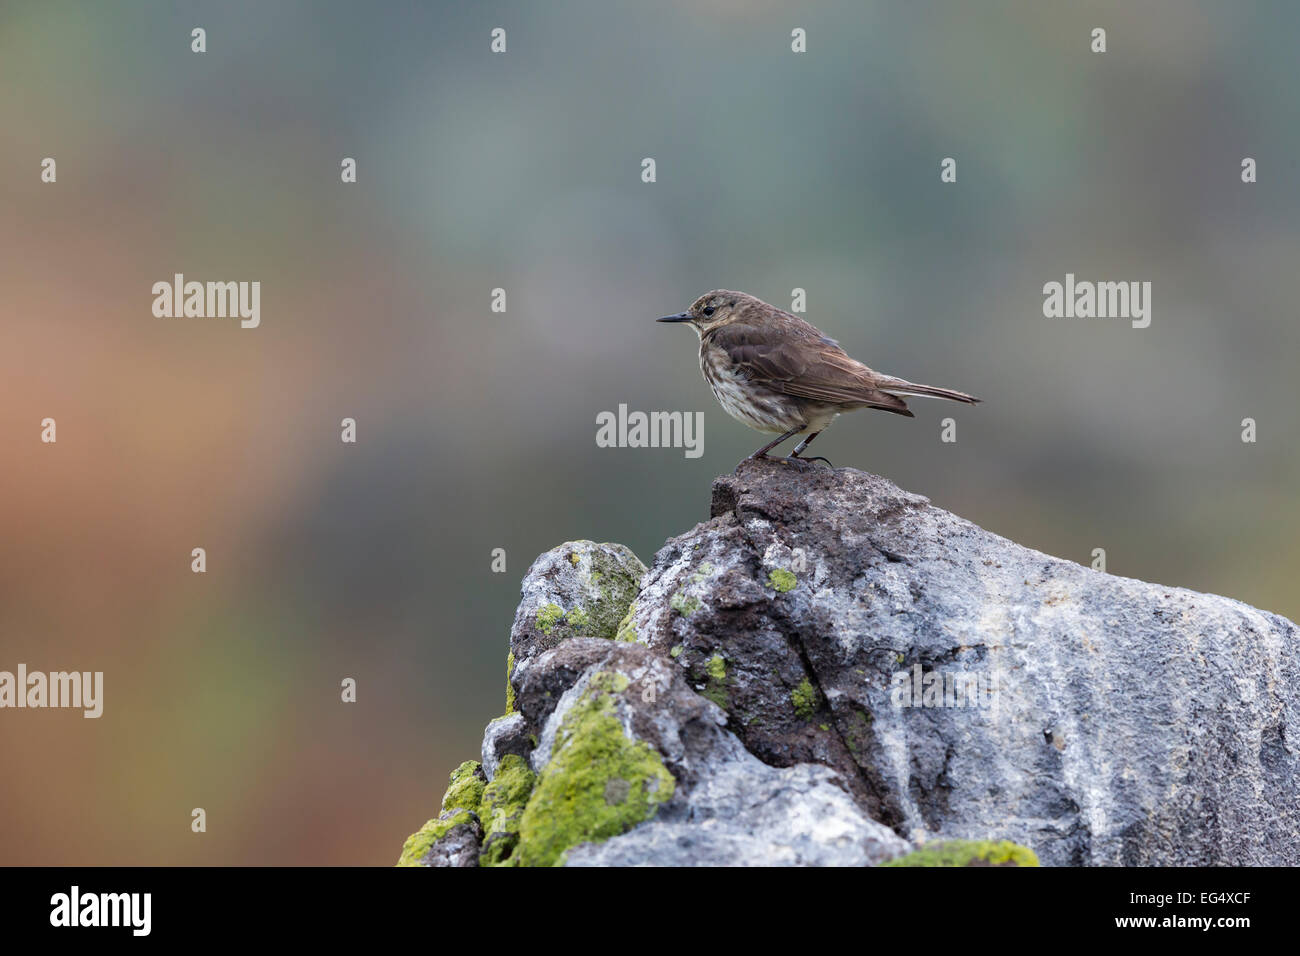 A rock pipit (Anthus spinoletta) perches on a rock - Stock Image